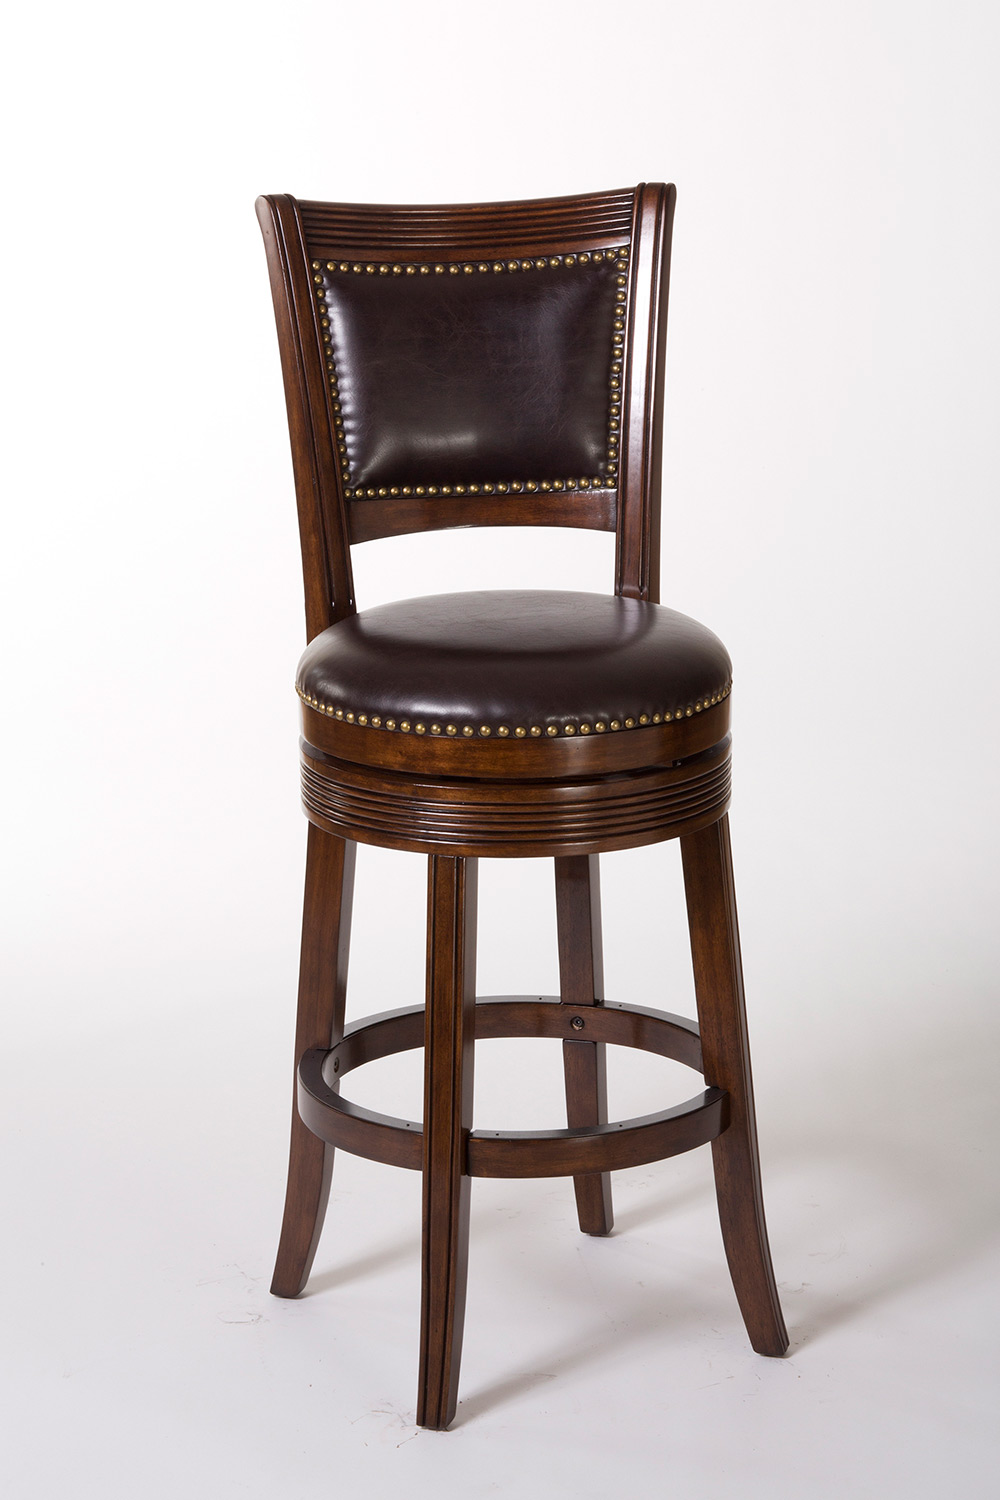 Hillsdale Lockefield Swivel Counter Stool - Espresso/Dark Brown PU